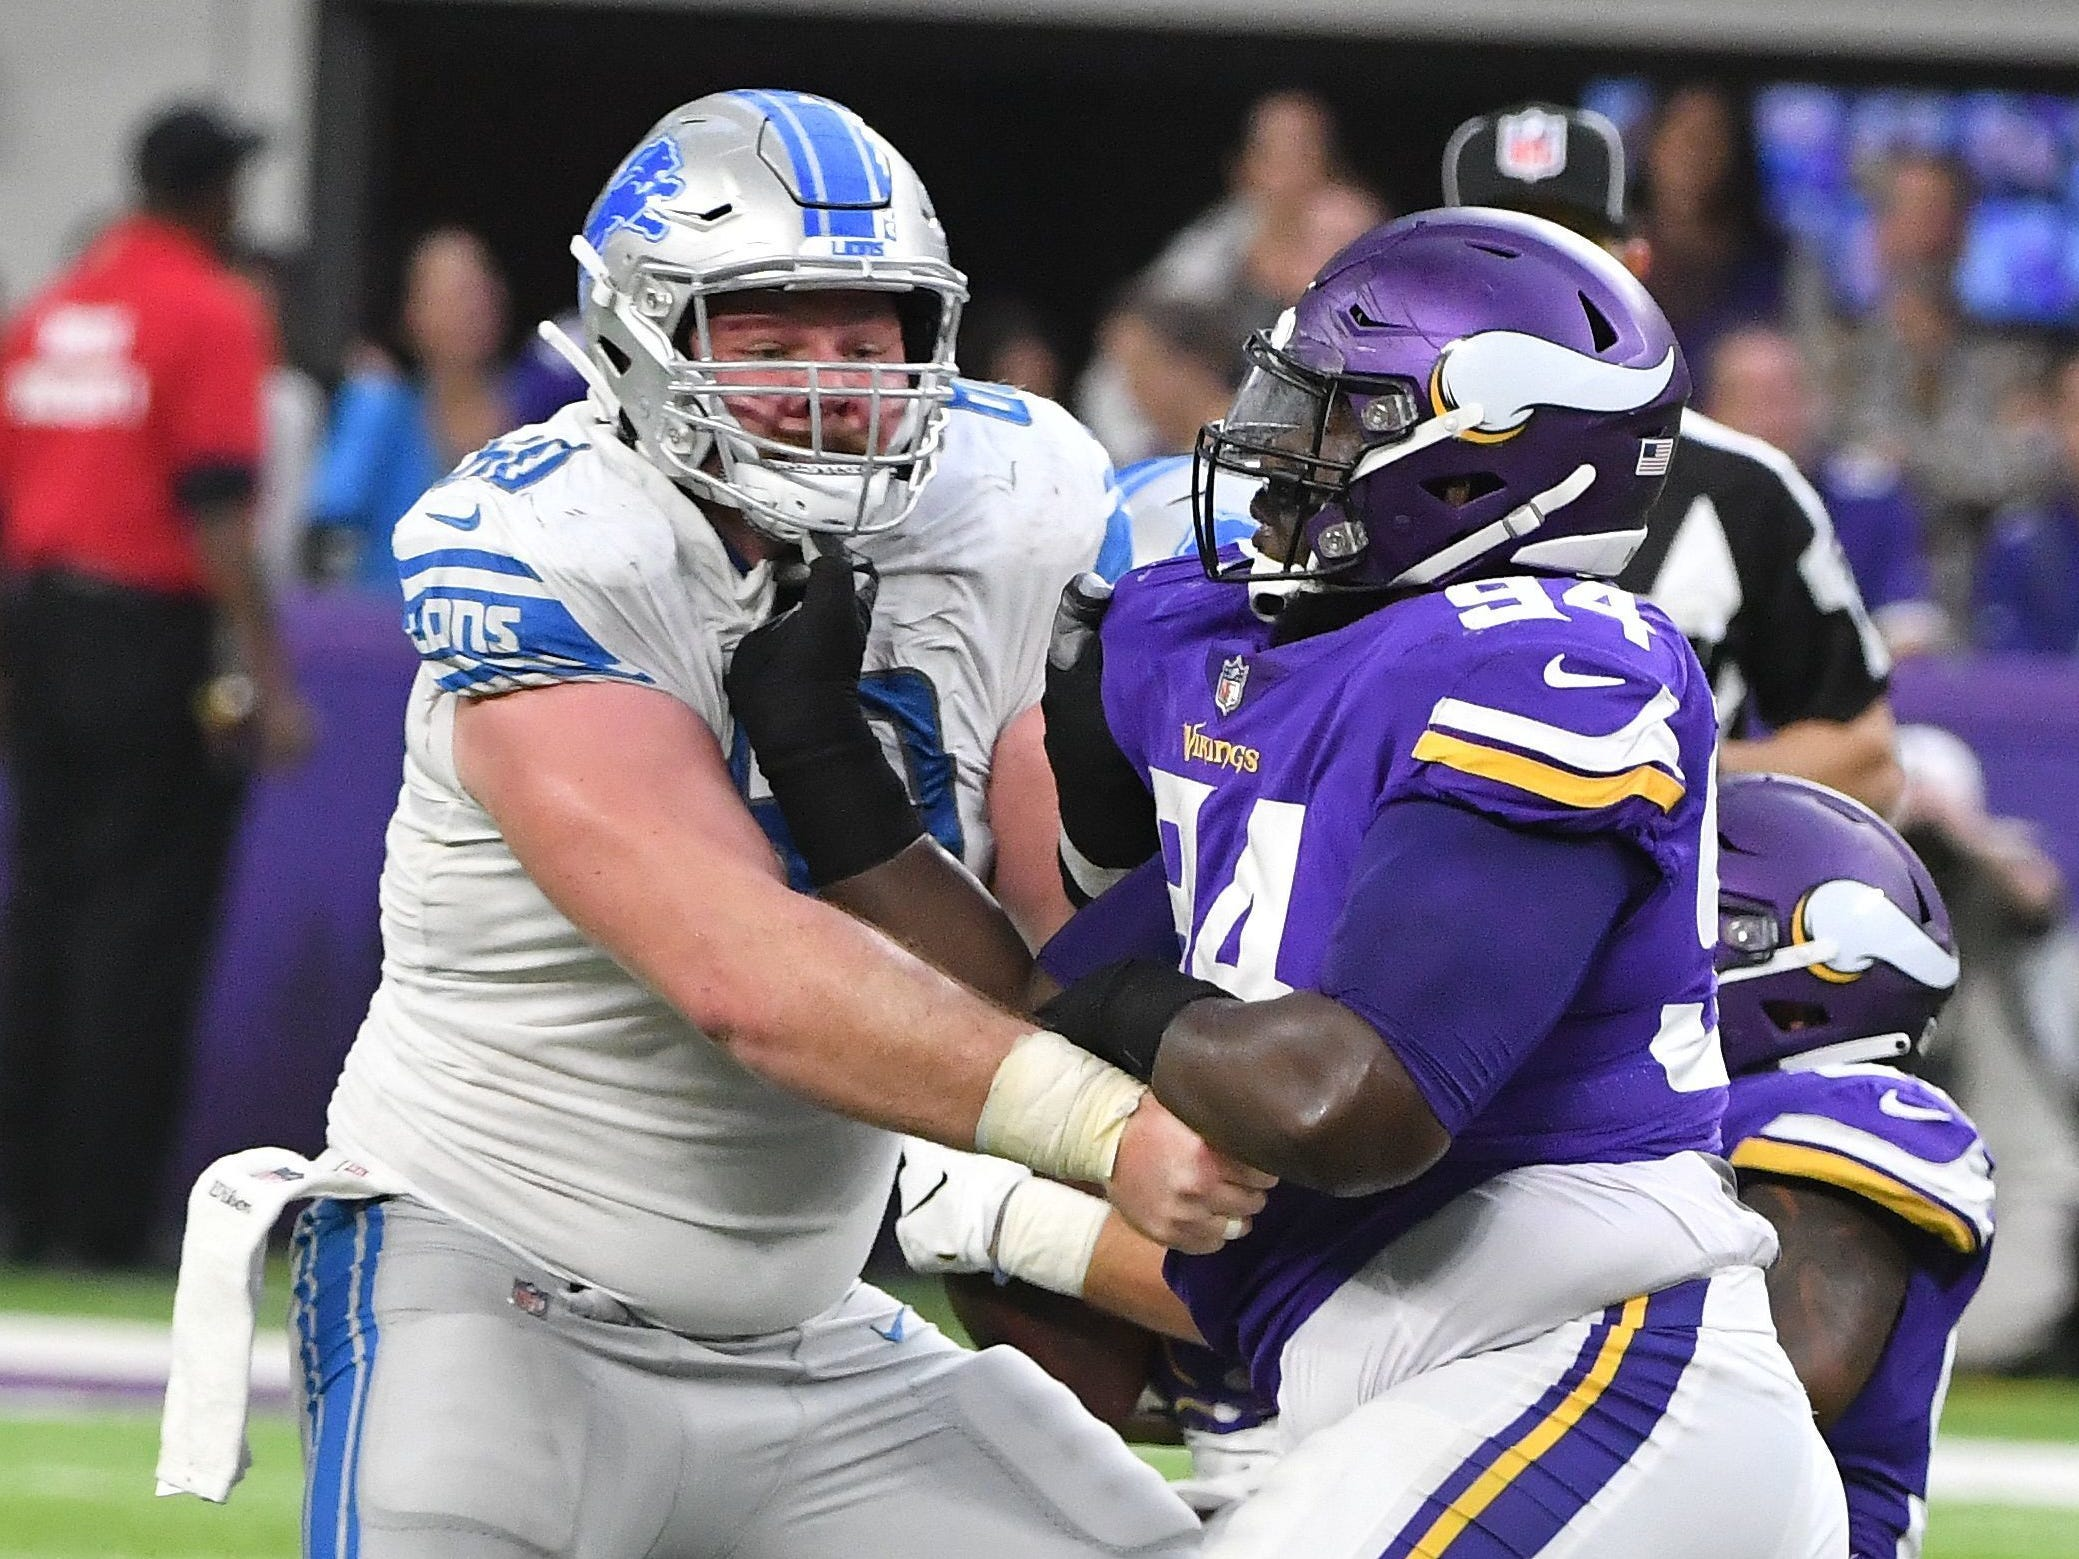 C Graham Glasgow: A strong case could be made that Glasgow was Detroit's best lineman last season, but he's been battled inconsistency more this year, likely in part to playing with a rookie off one shoulder and an unreliable rotation on the other. Regardless, the amount of pressure he's allowing is too much for a center. Grade: C+